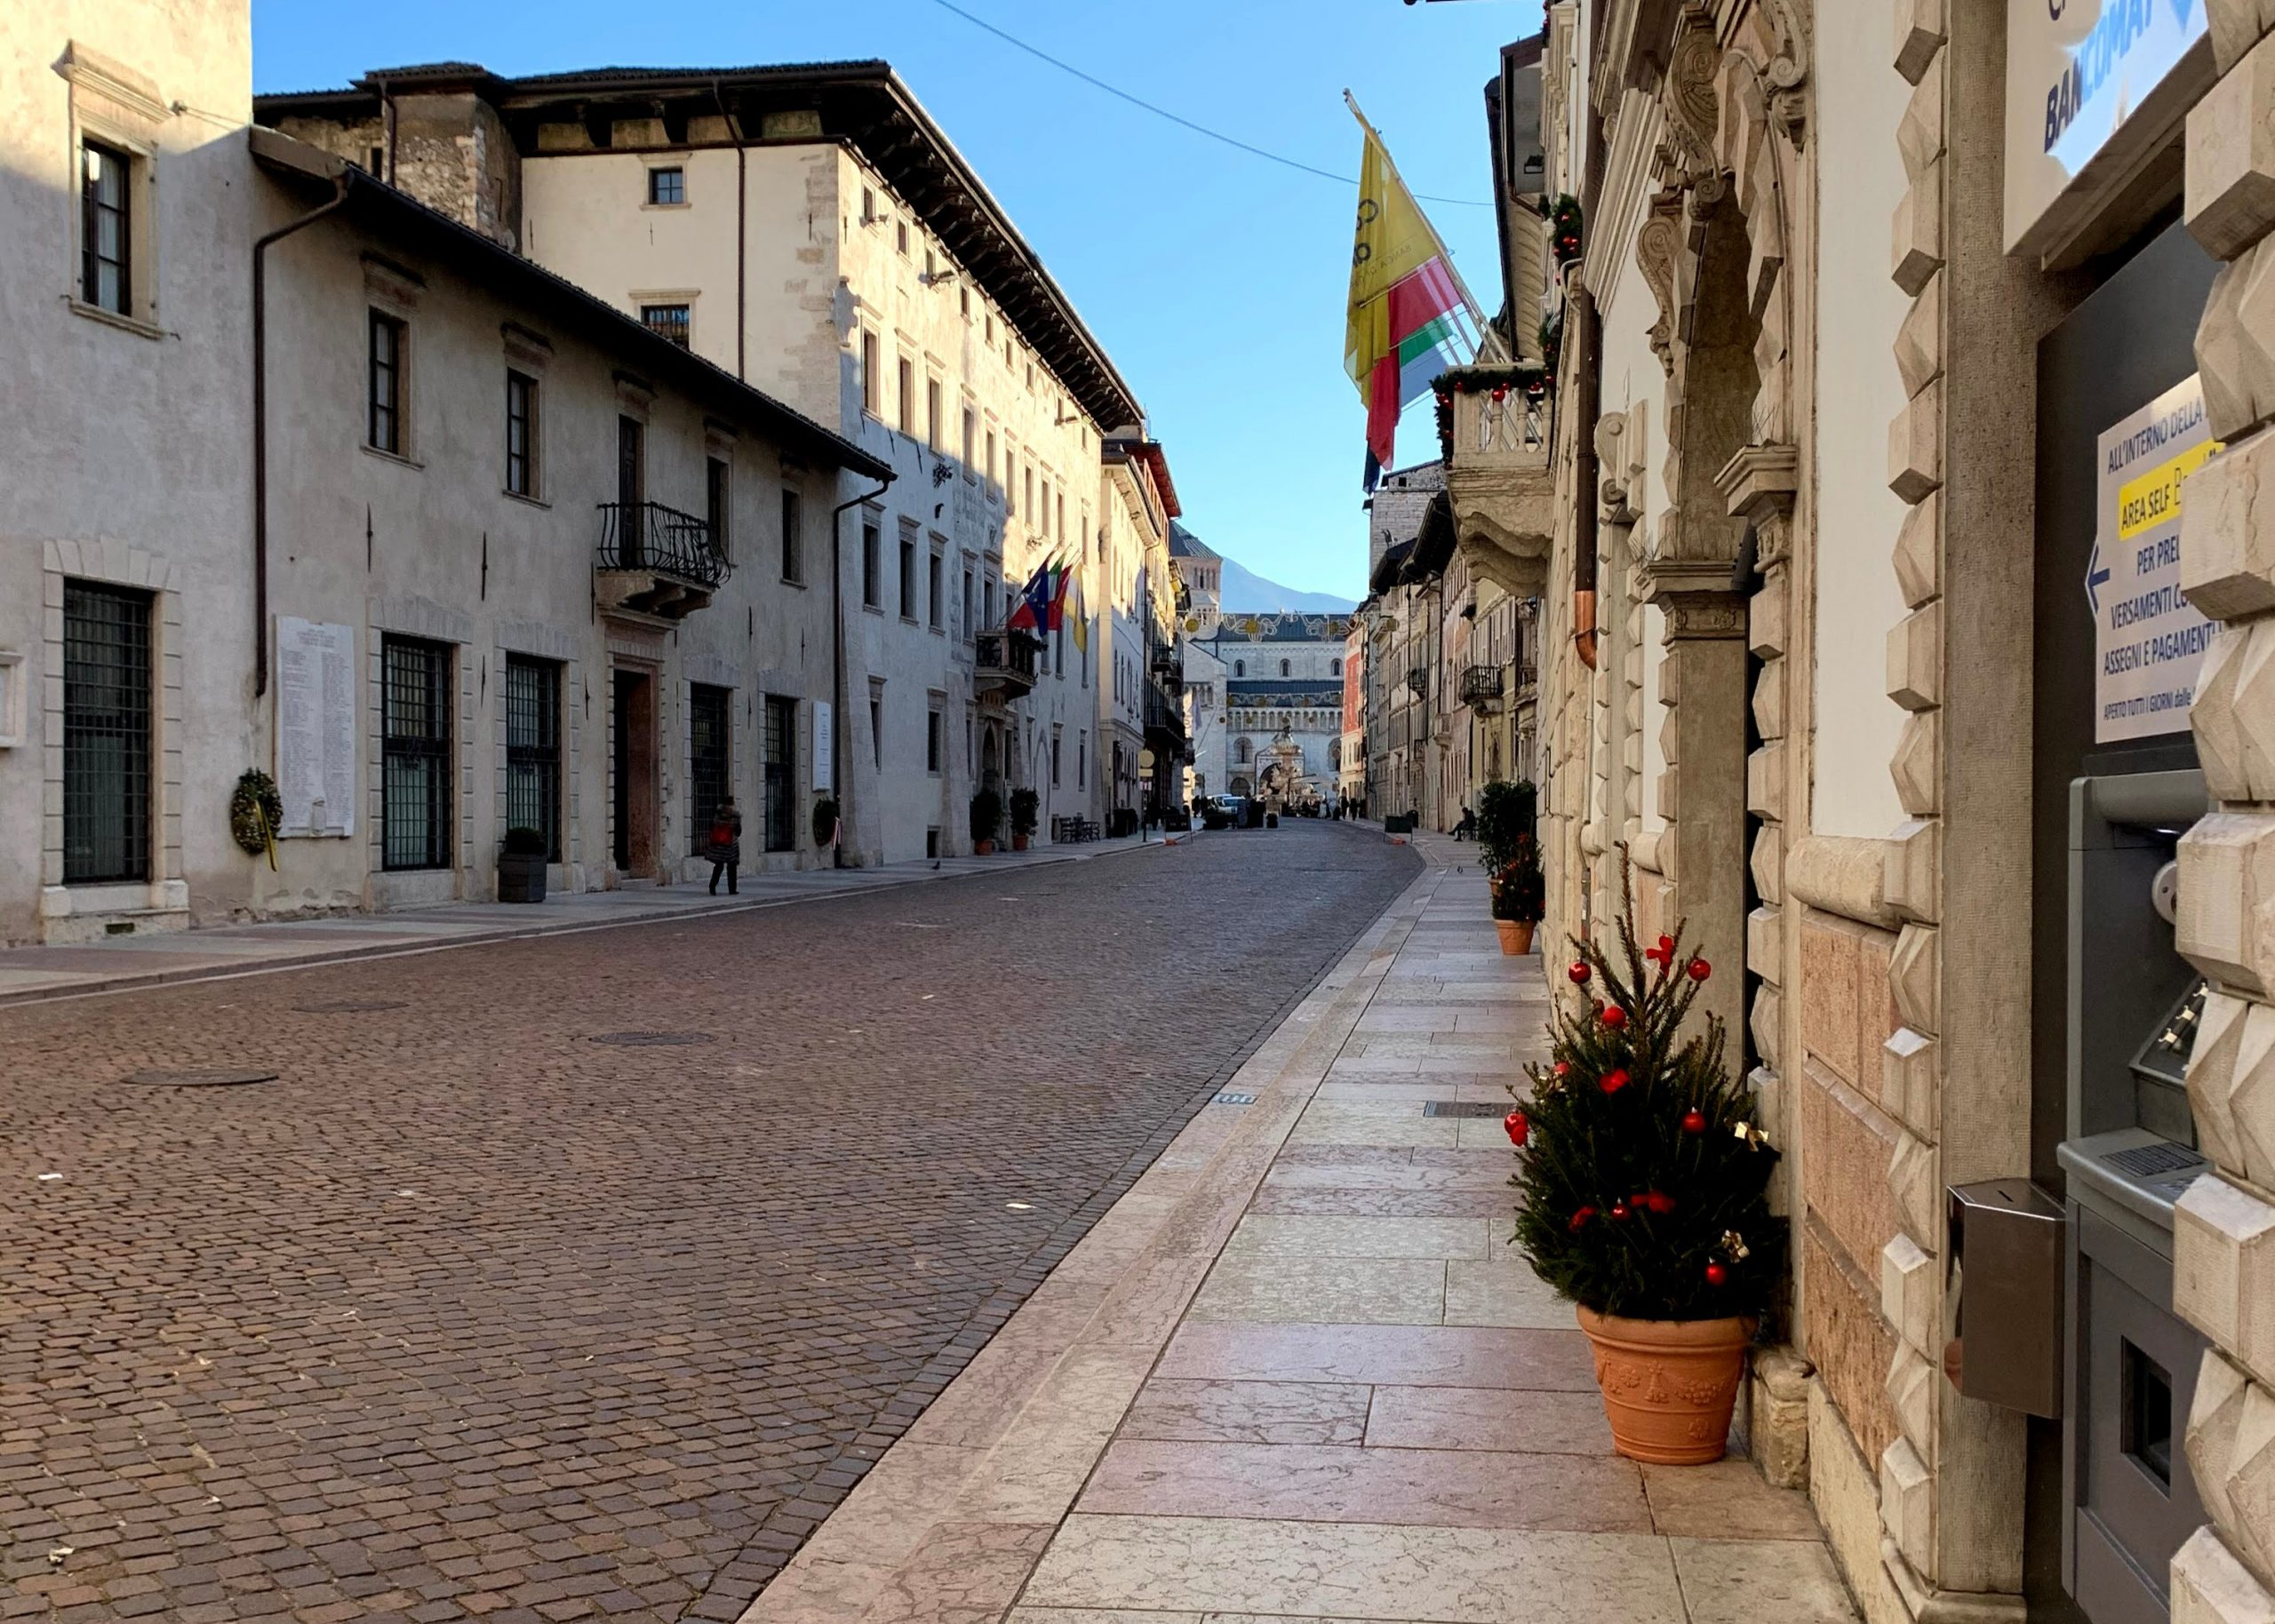 empty streets of Italy amidst the covid-19 red alert